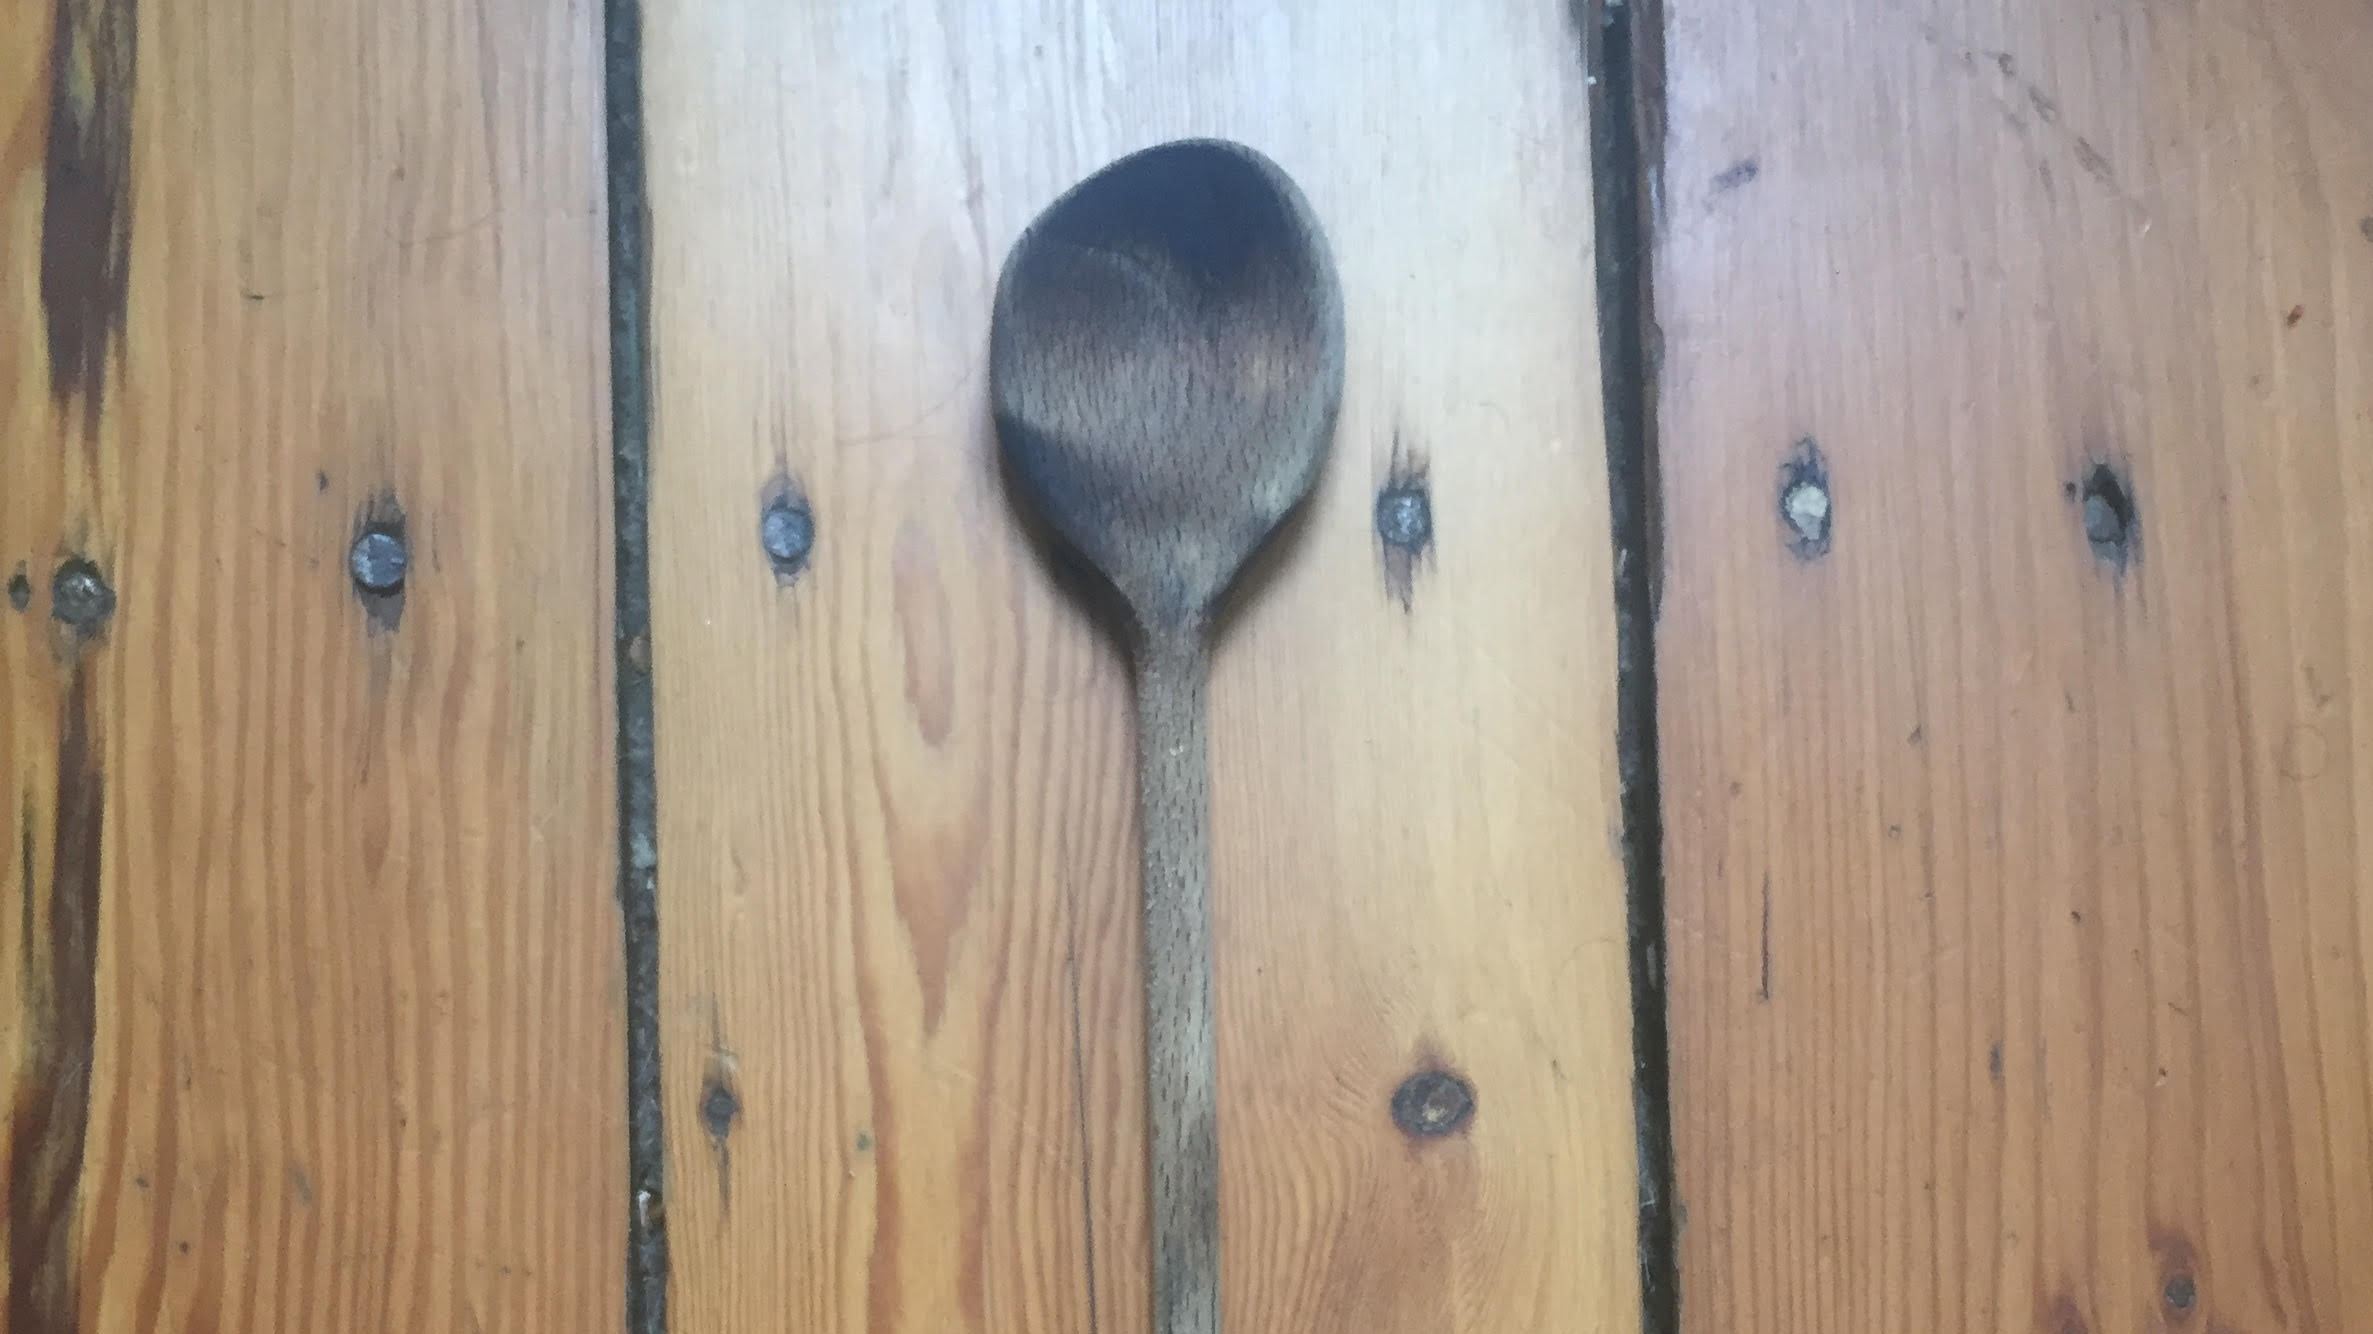 My Favorite Spoon